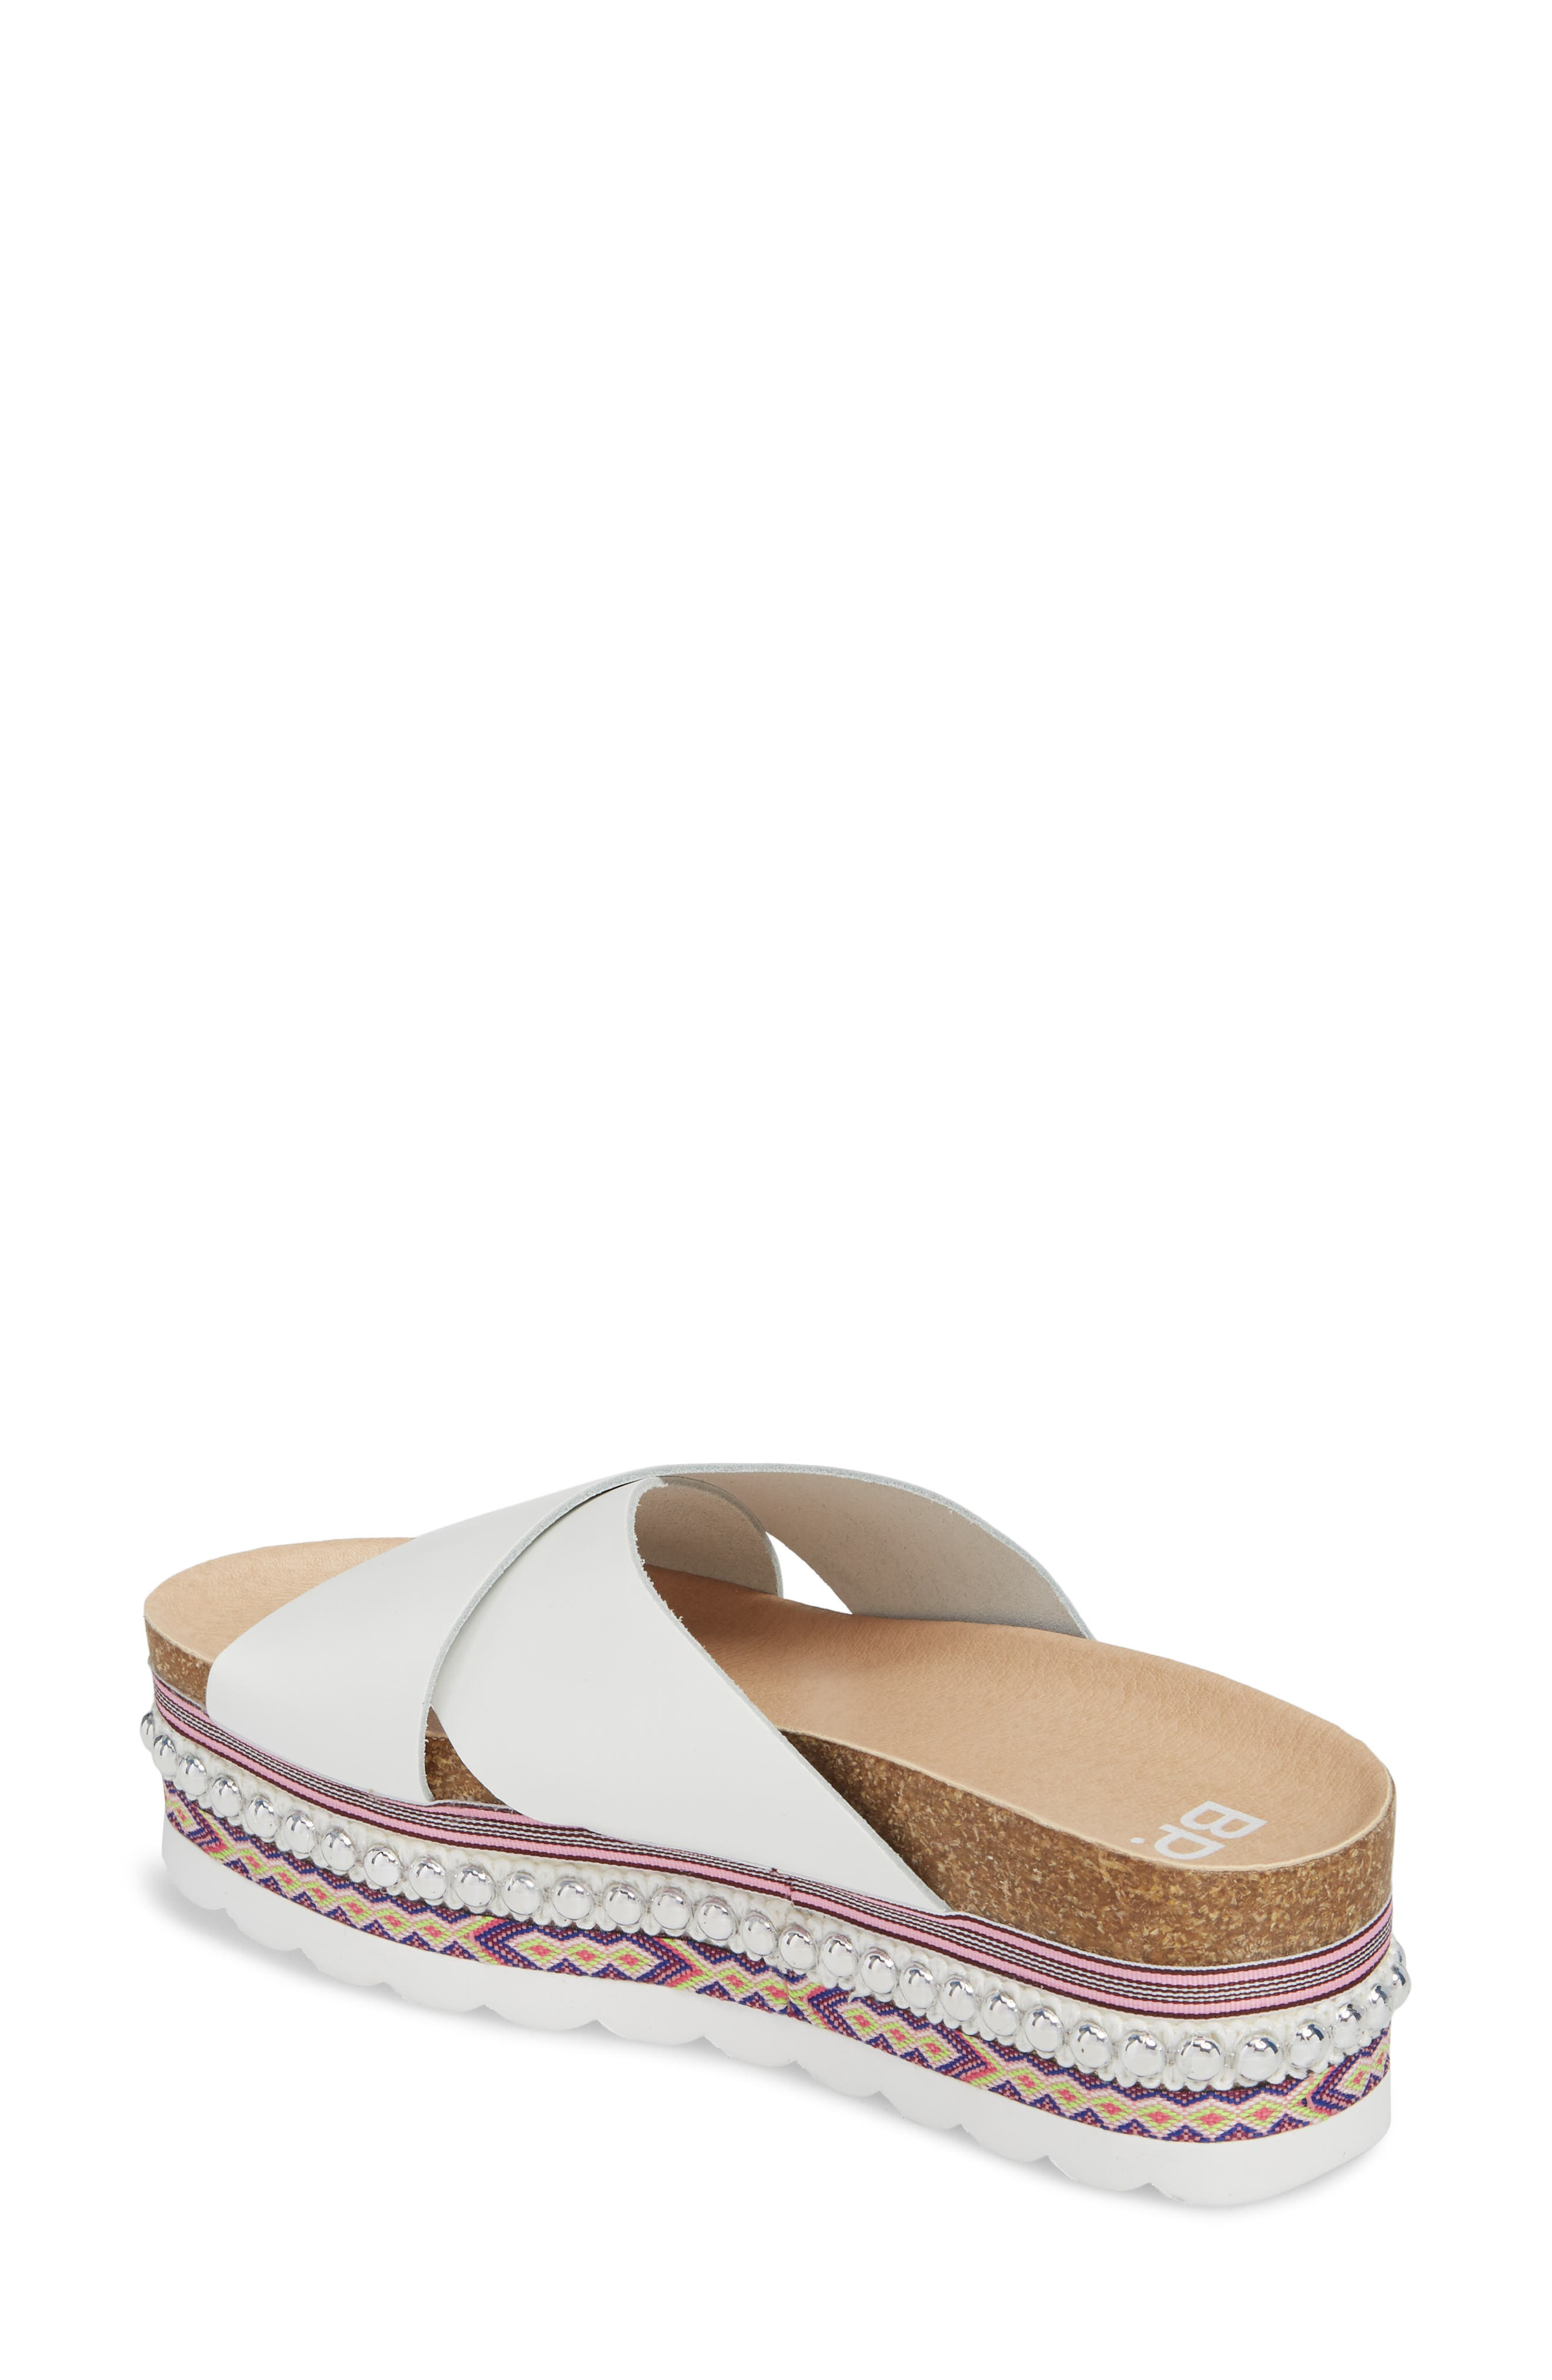 Torri Platform Slide Sandal,                             Alternate thumbnail 2, color,                             WHITE LEATHER